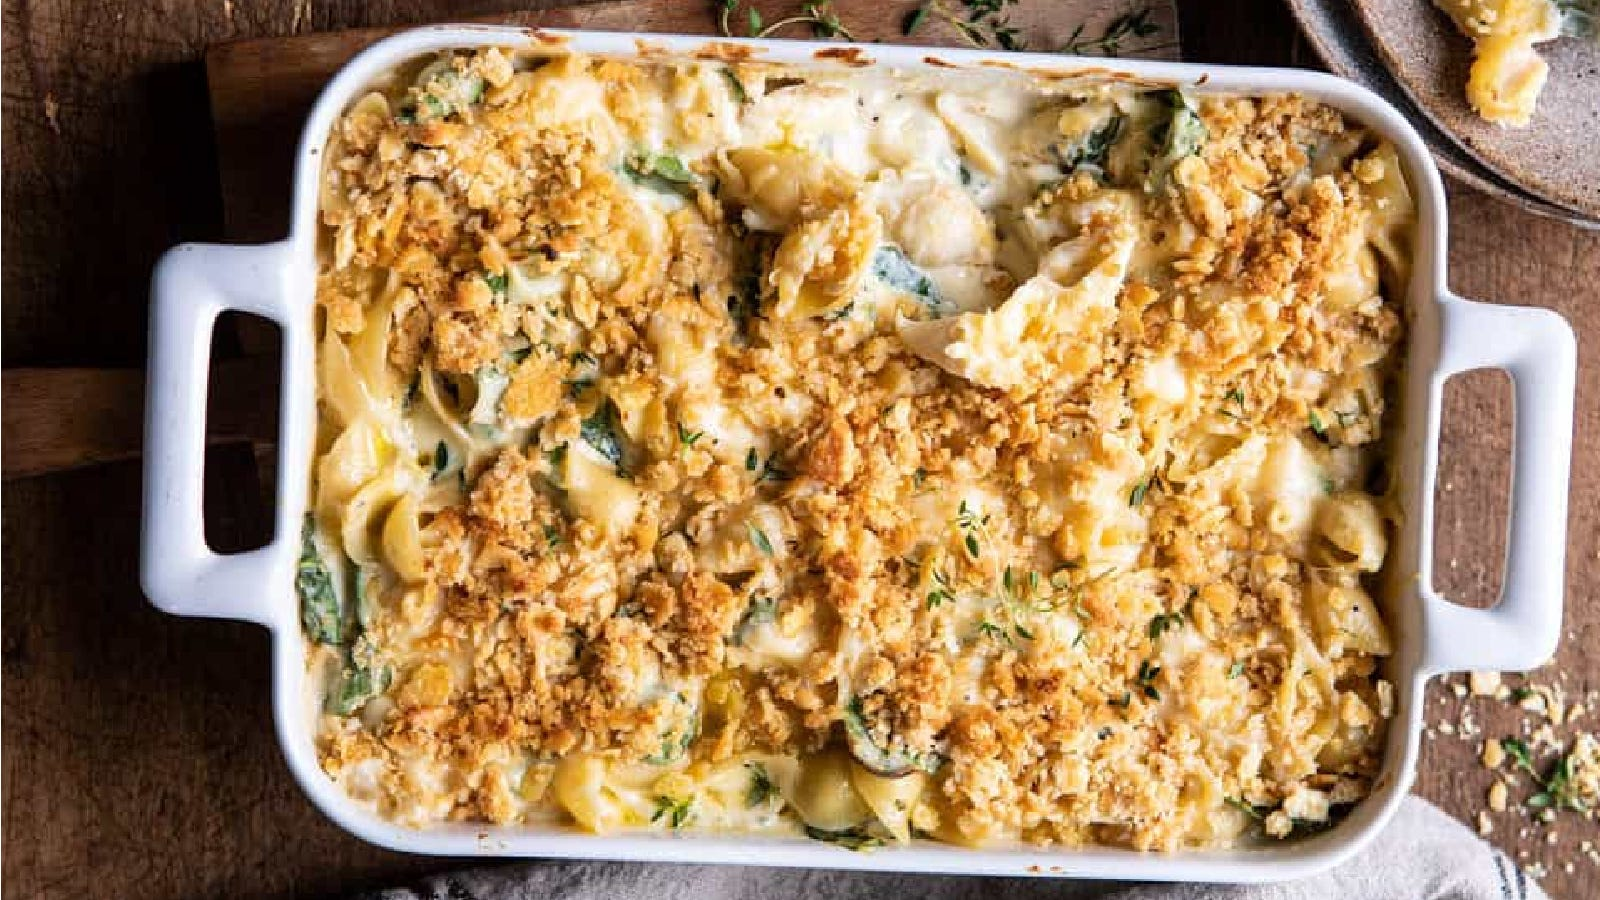 A casserole dish, filled with cheesy spinach and artichoke macaroni and cheese.